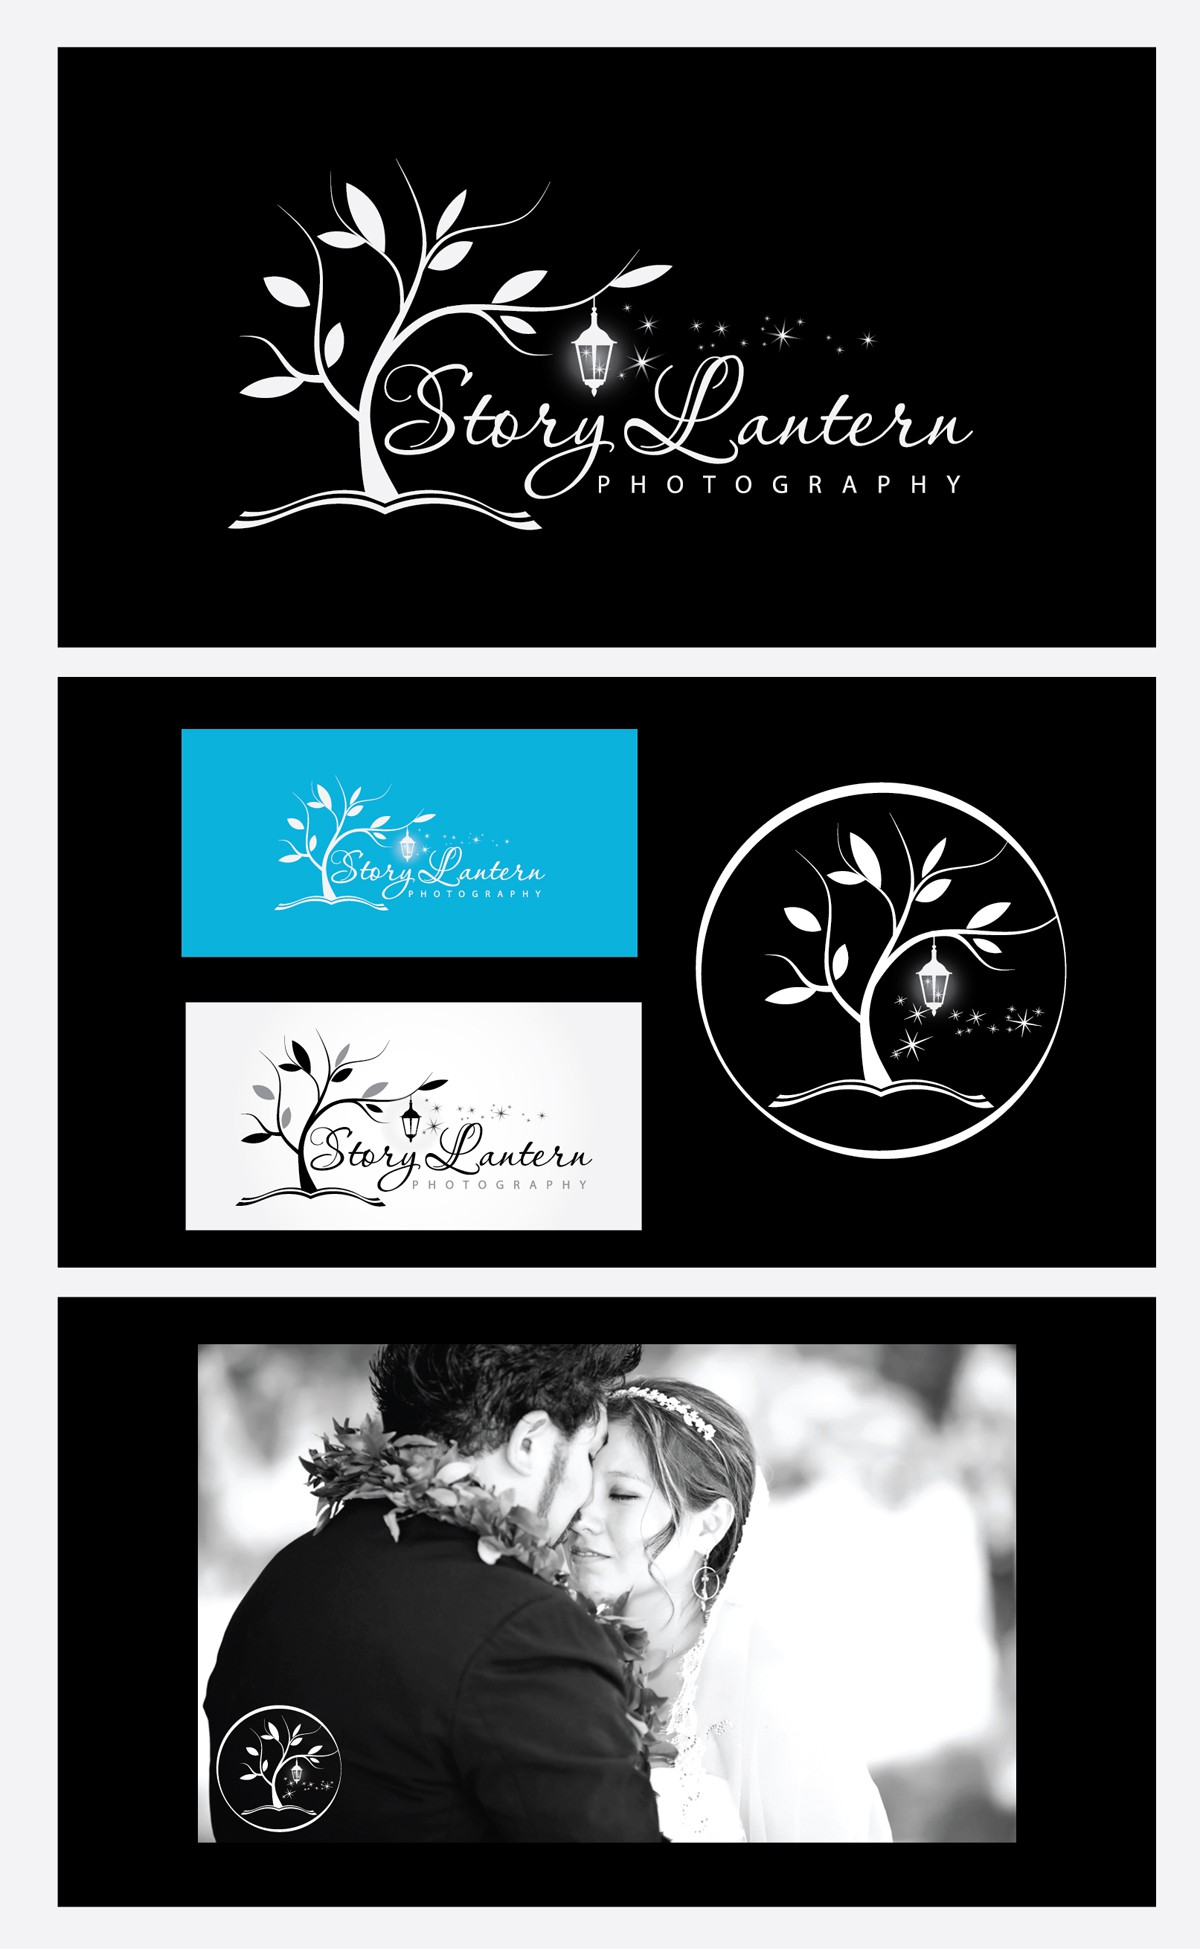 New logo wanted for Story Lantern